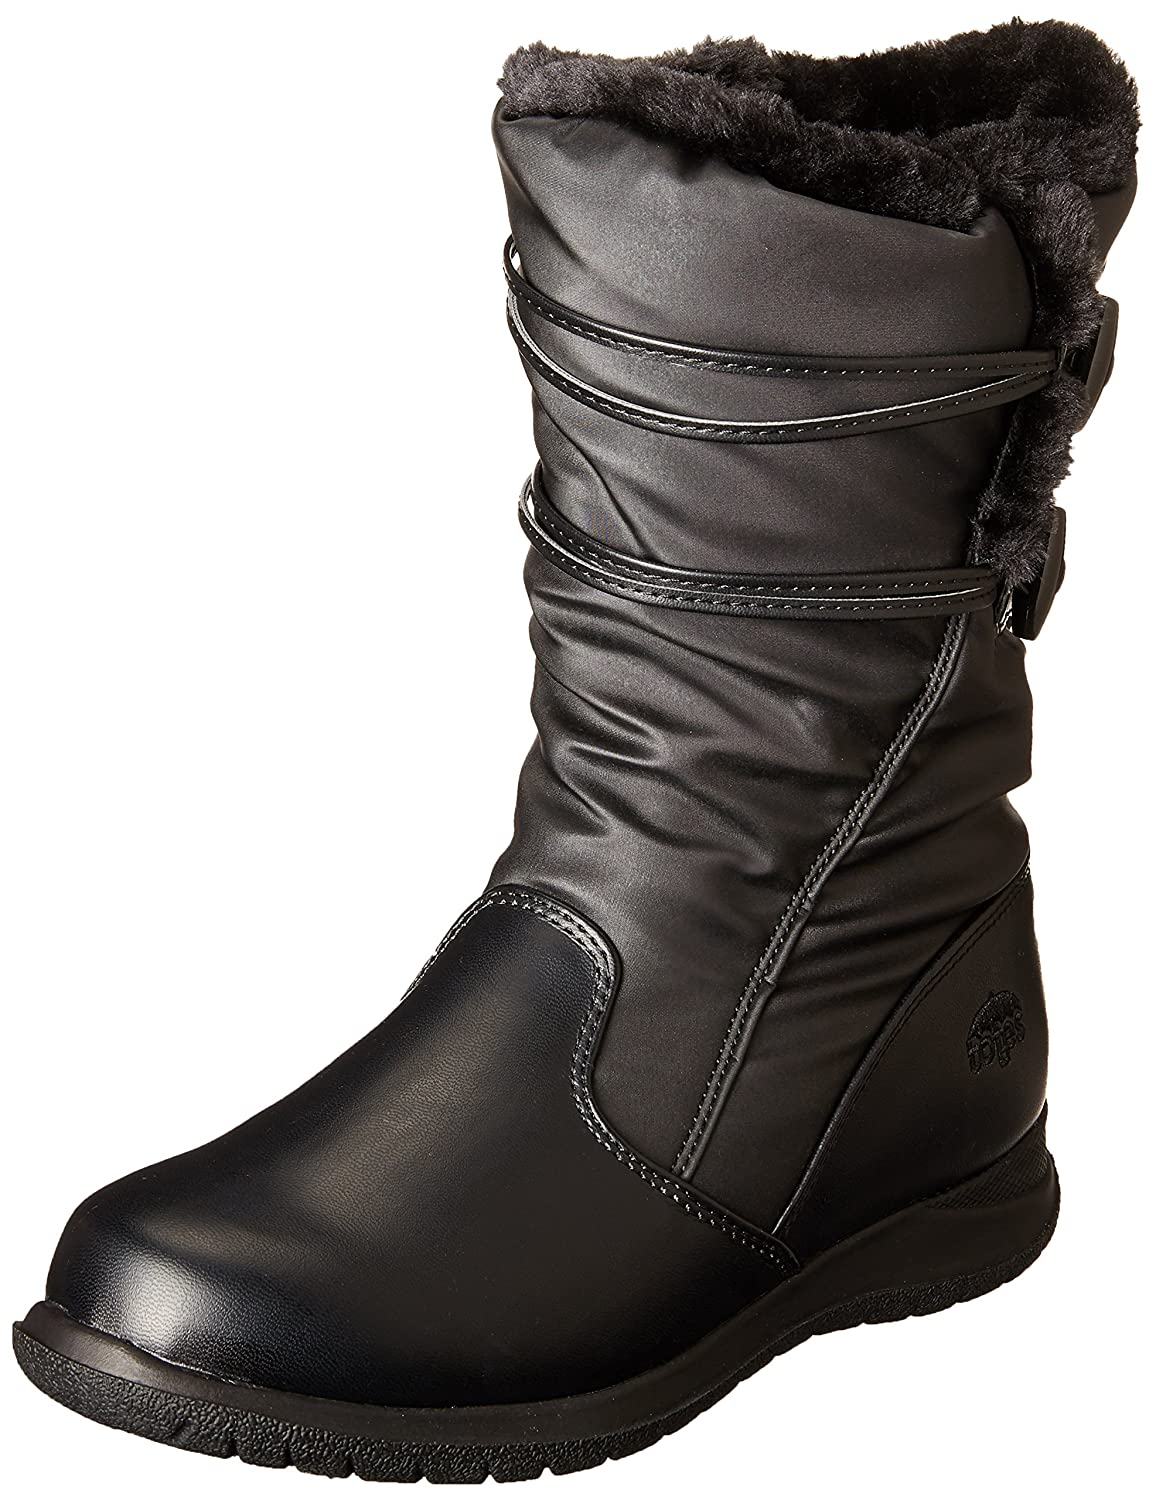 totes Women's Judy with Toggles Snow Boot B00GWZIWDO 7 B(M) US|Black